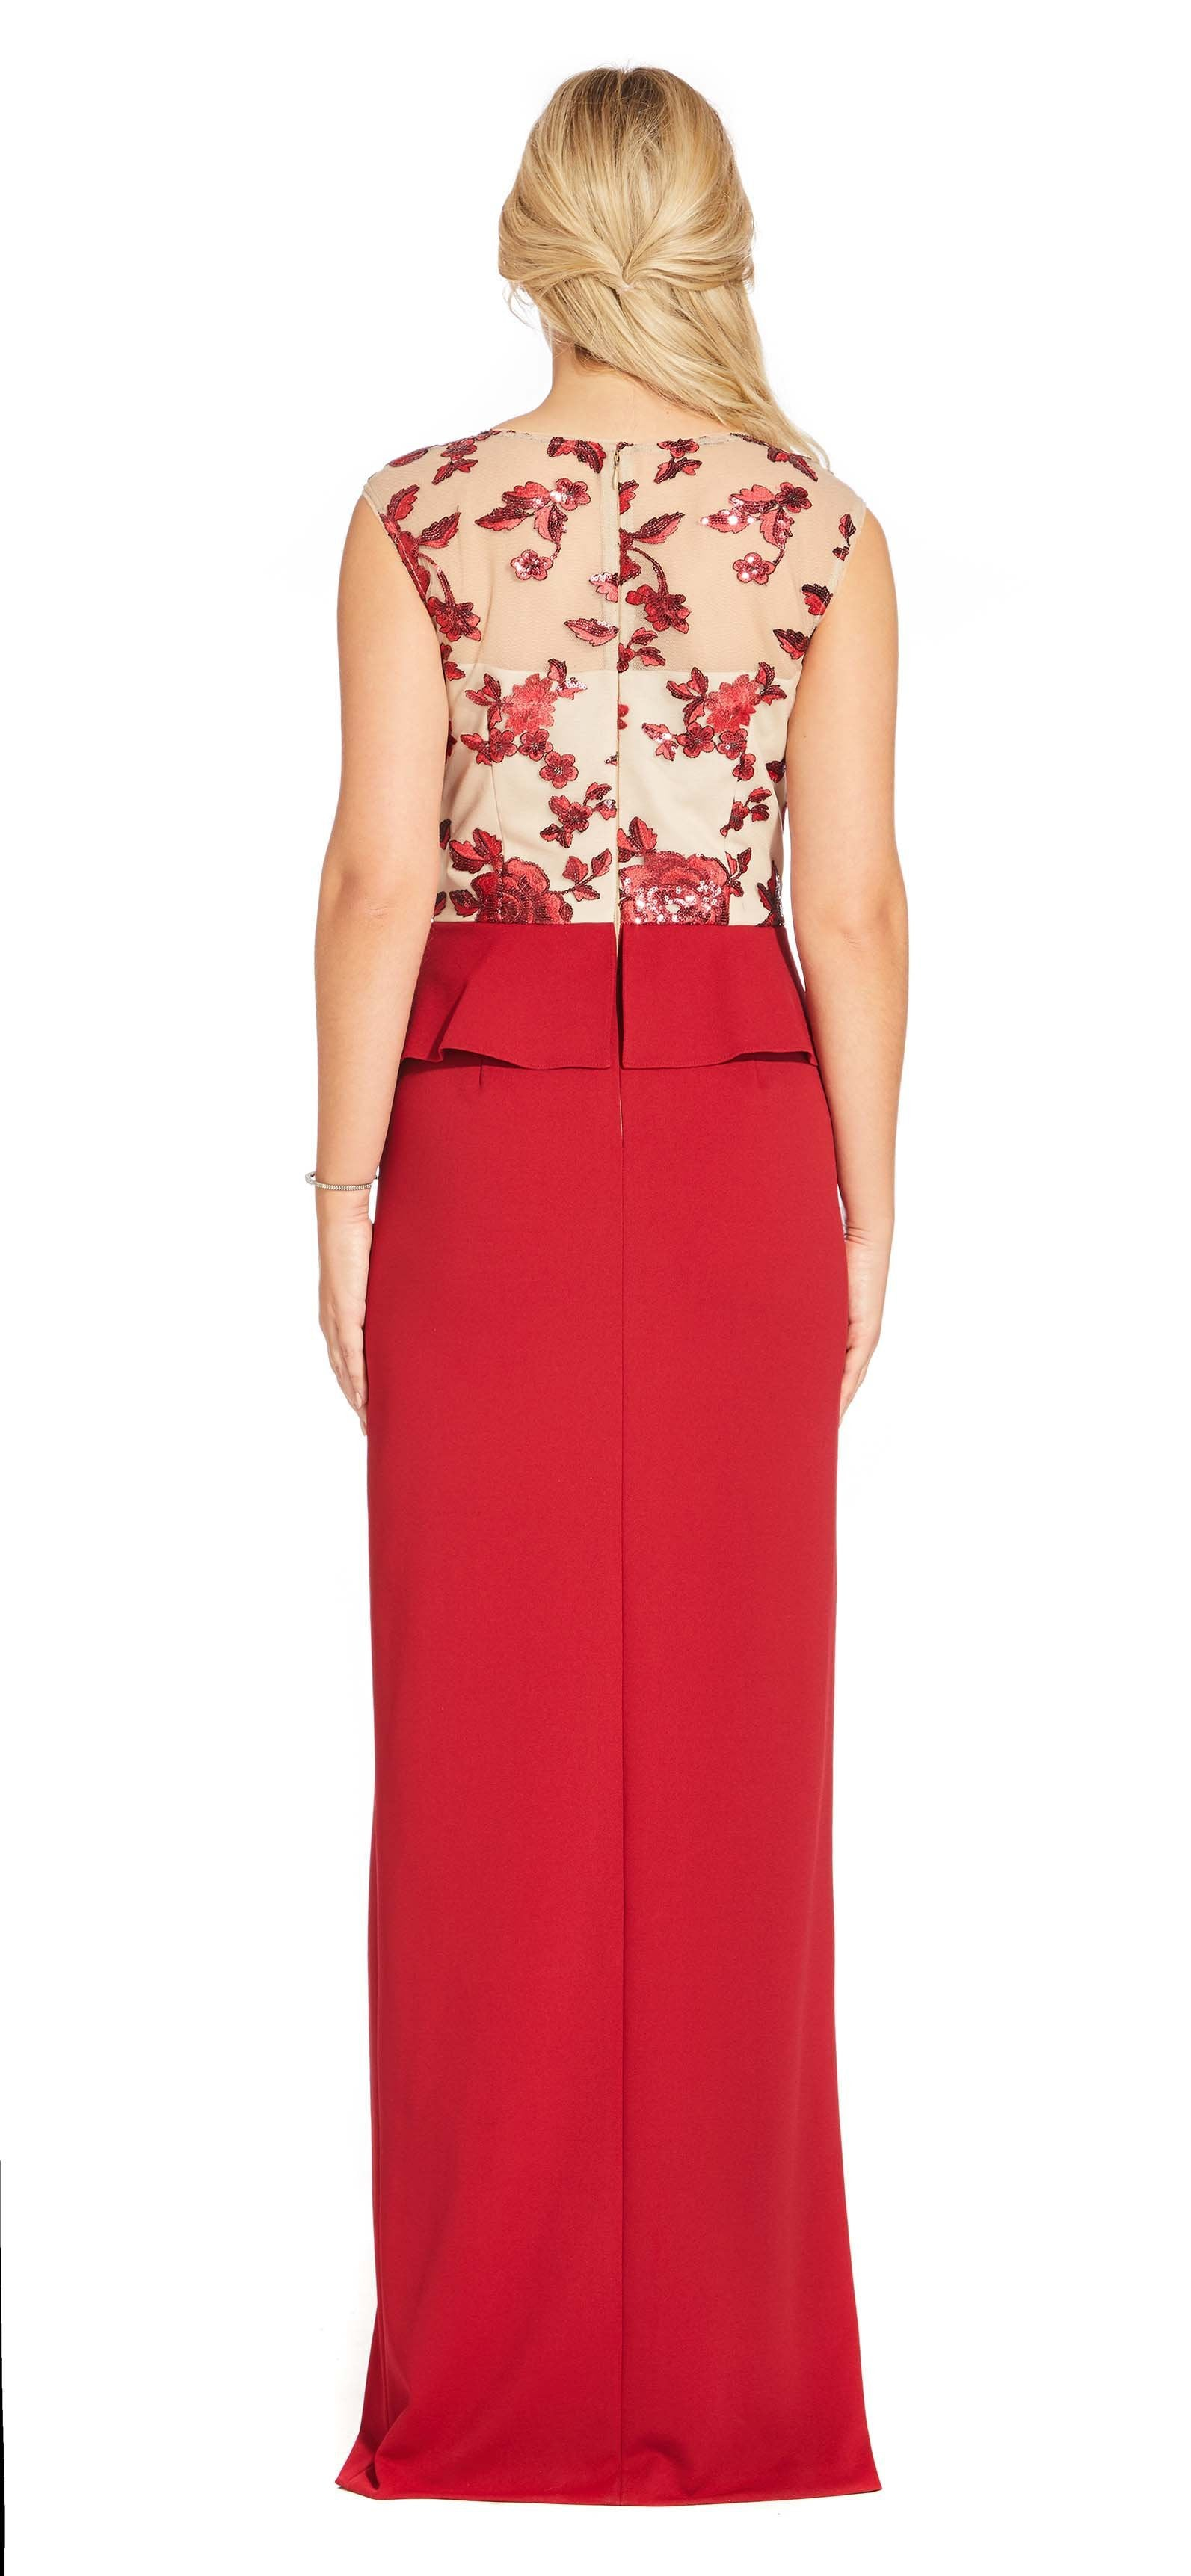 Adrianna Papell - AP1E204361 Floral Sequined Peplum Dress with Slit In Red and Nude